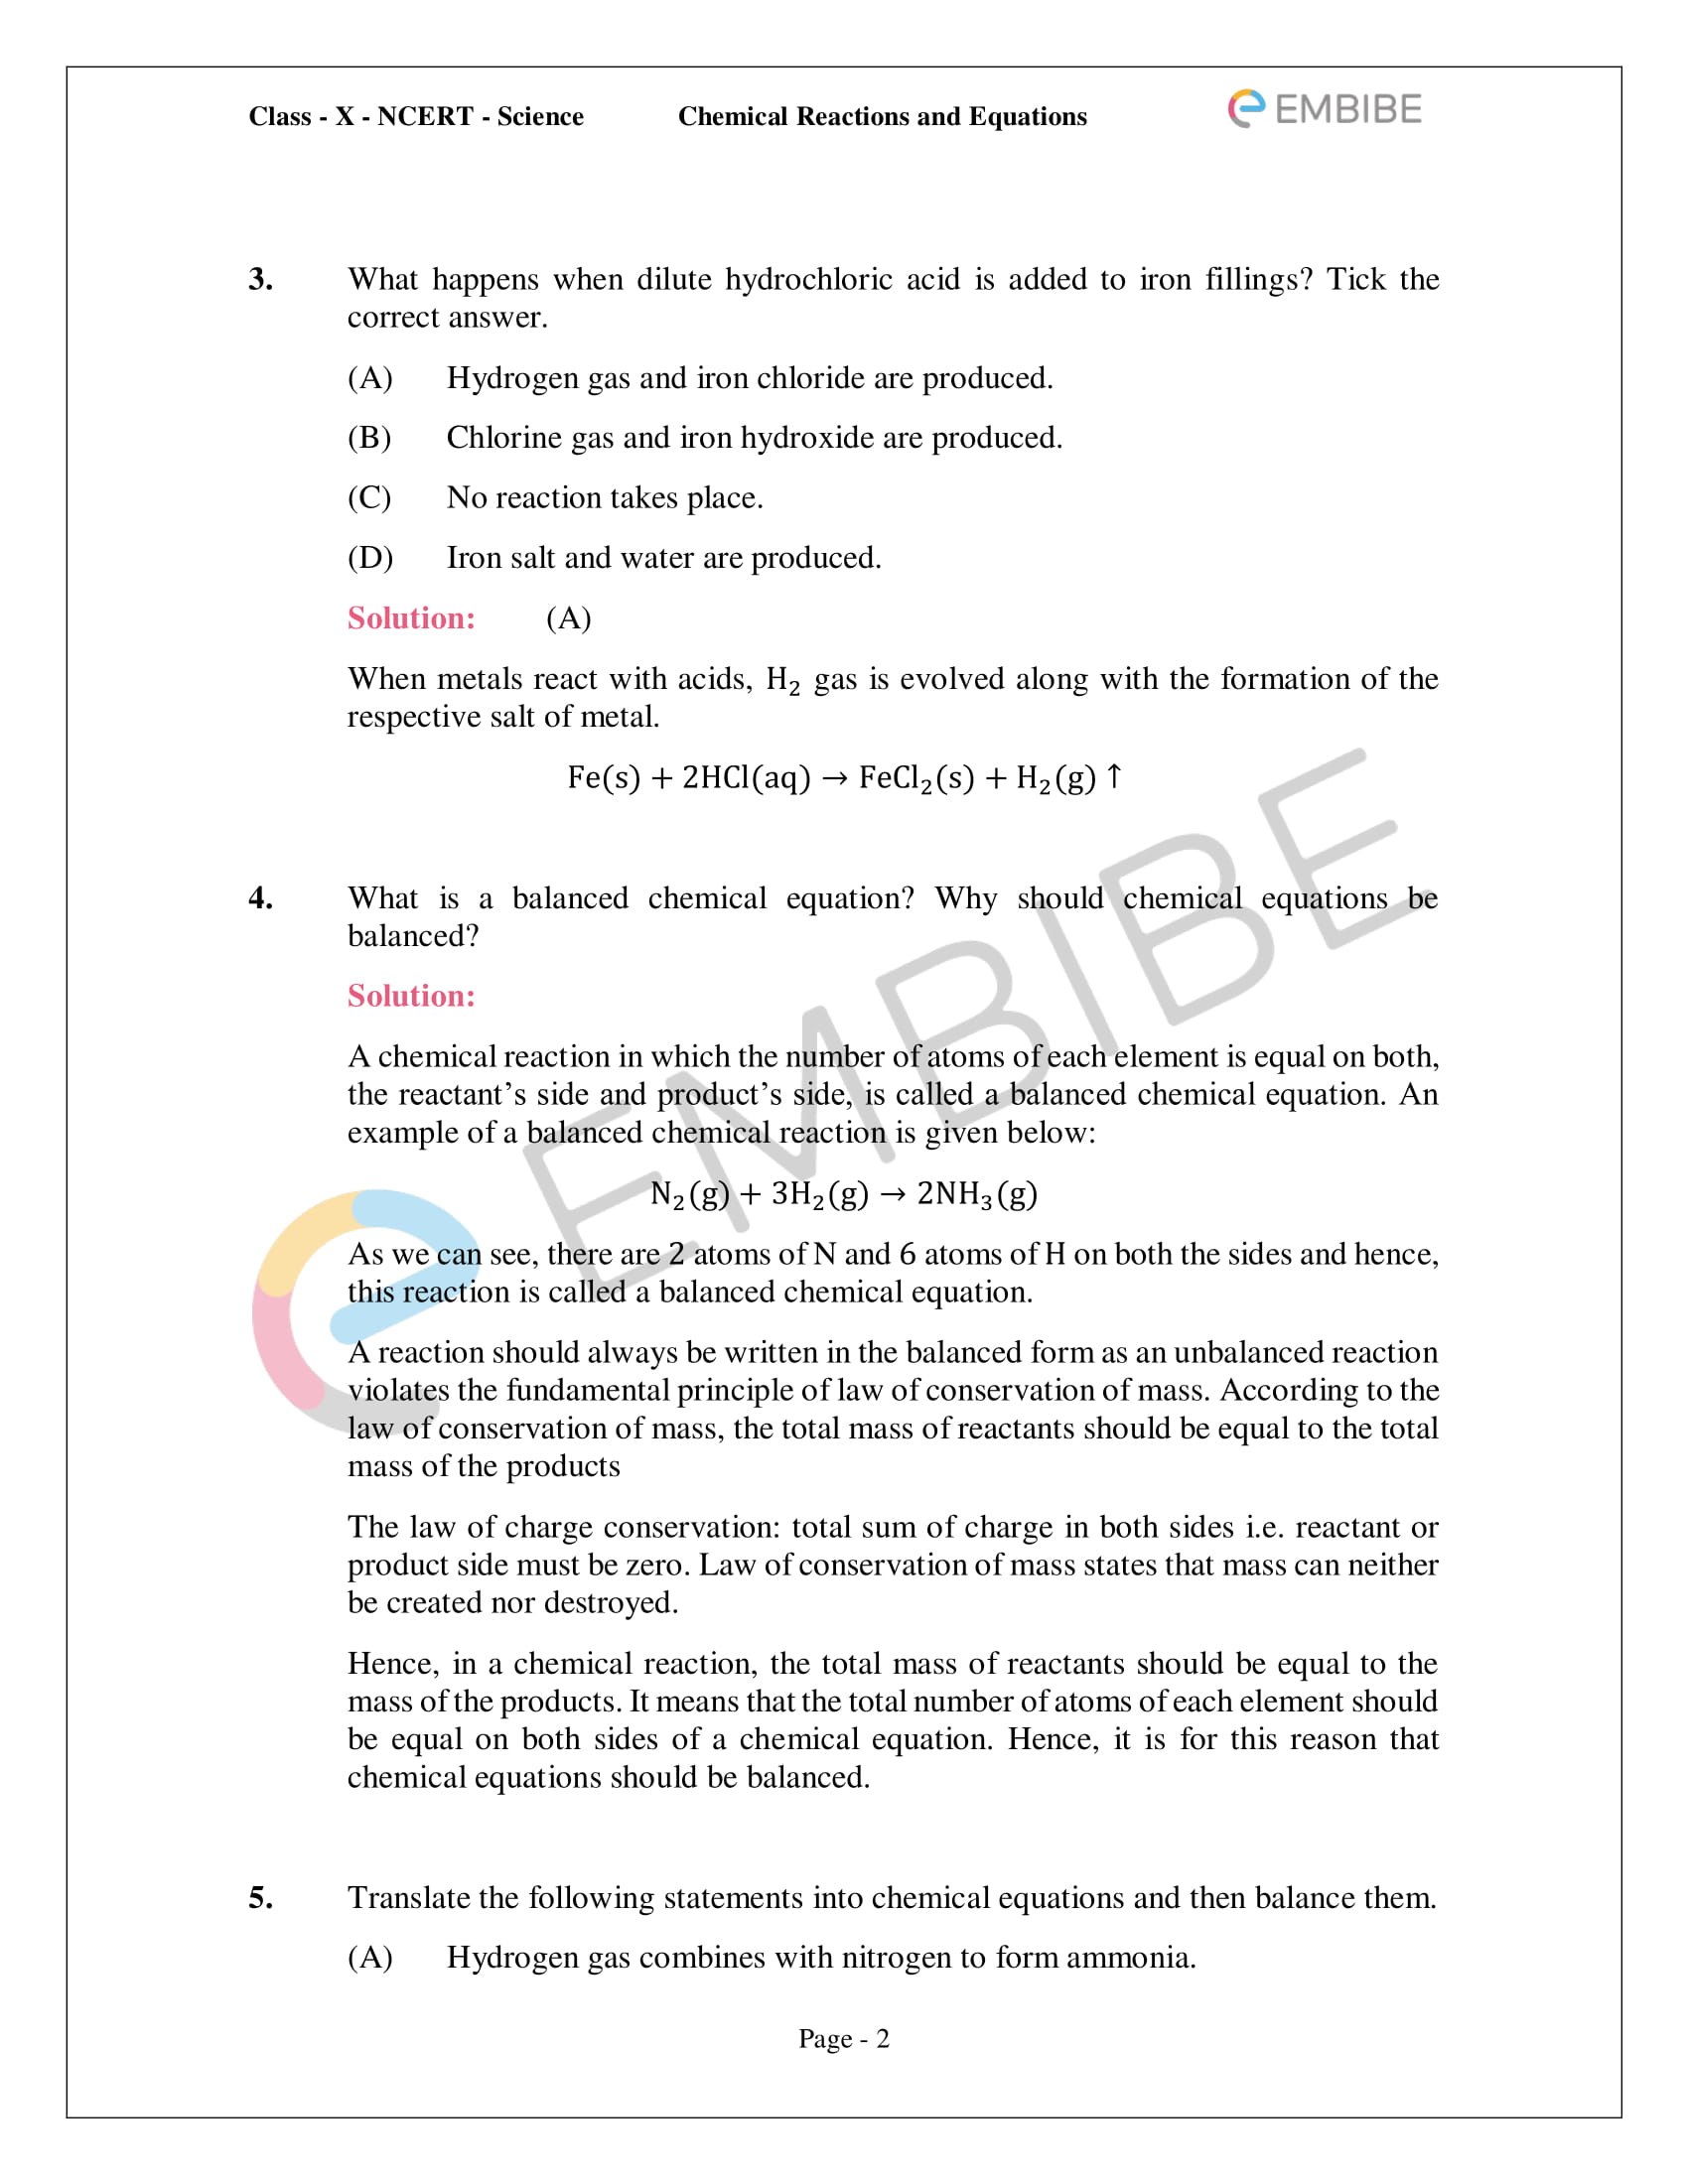 NCERT Solutions Class 10 Science Chapter 1 Chemical Reactions and Equations_questions_final _V3 (1)-02